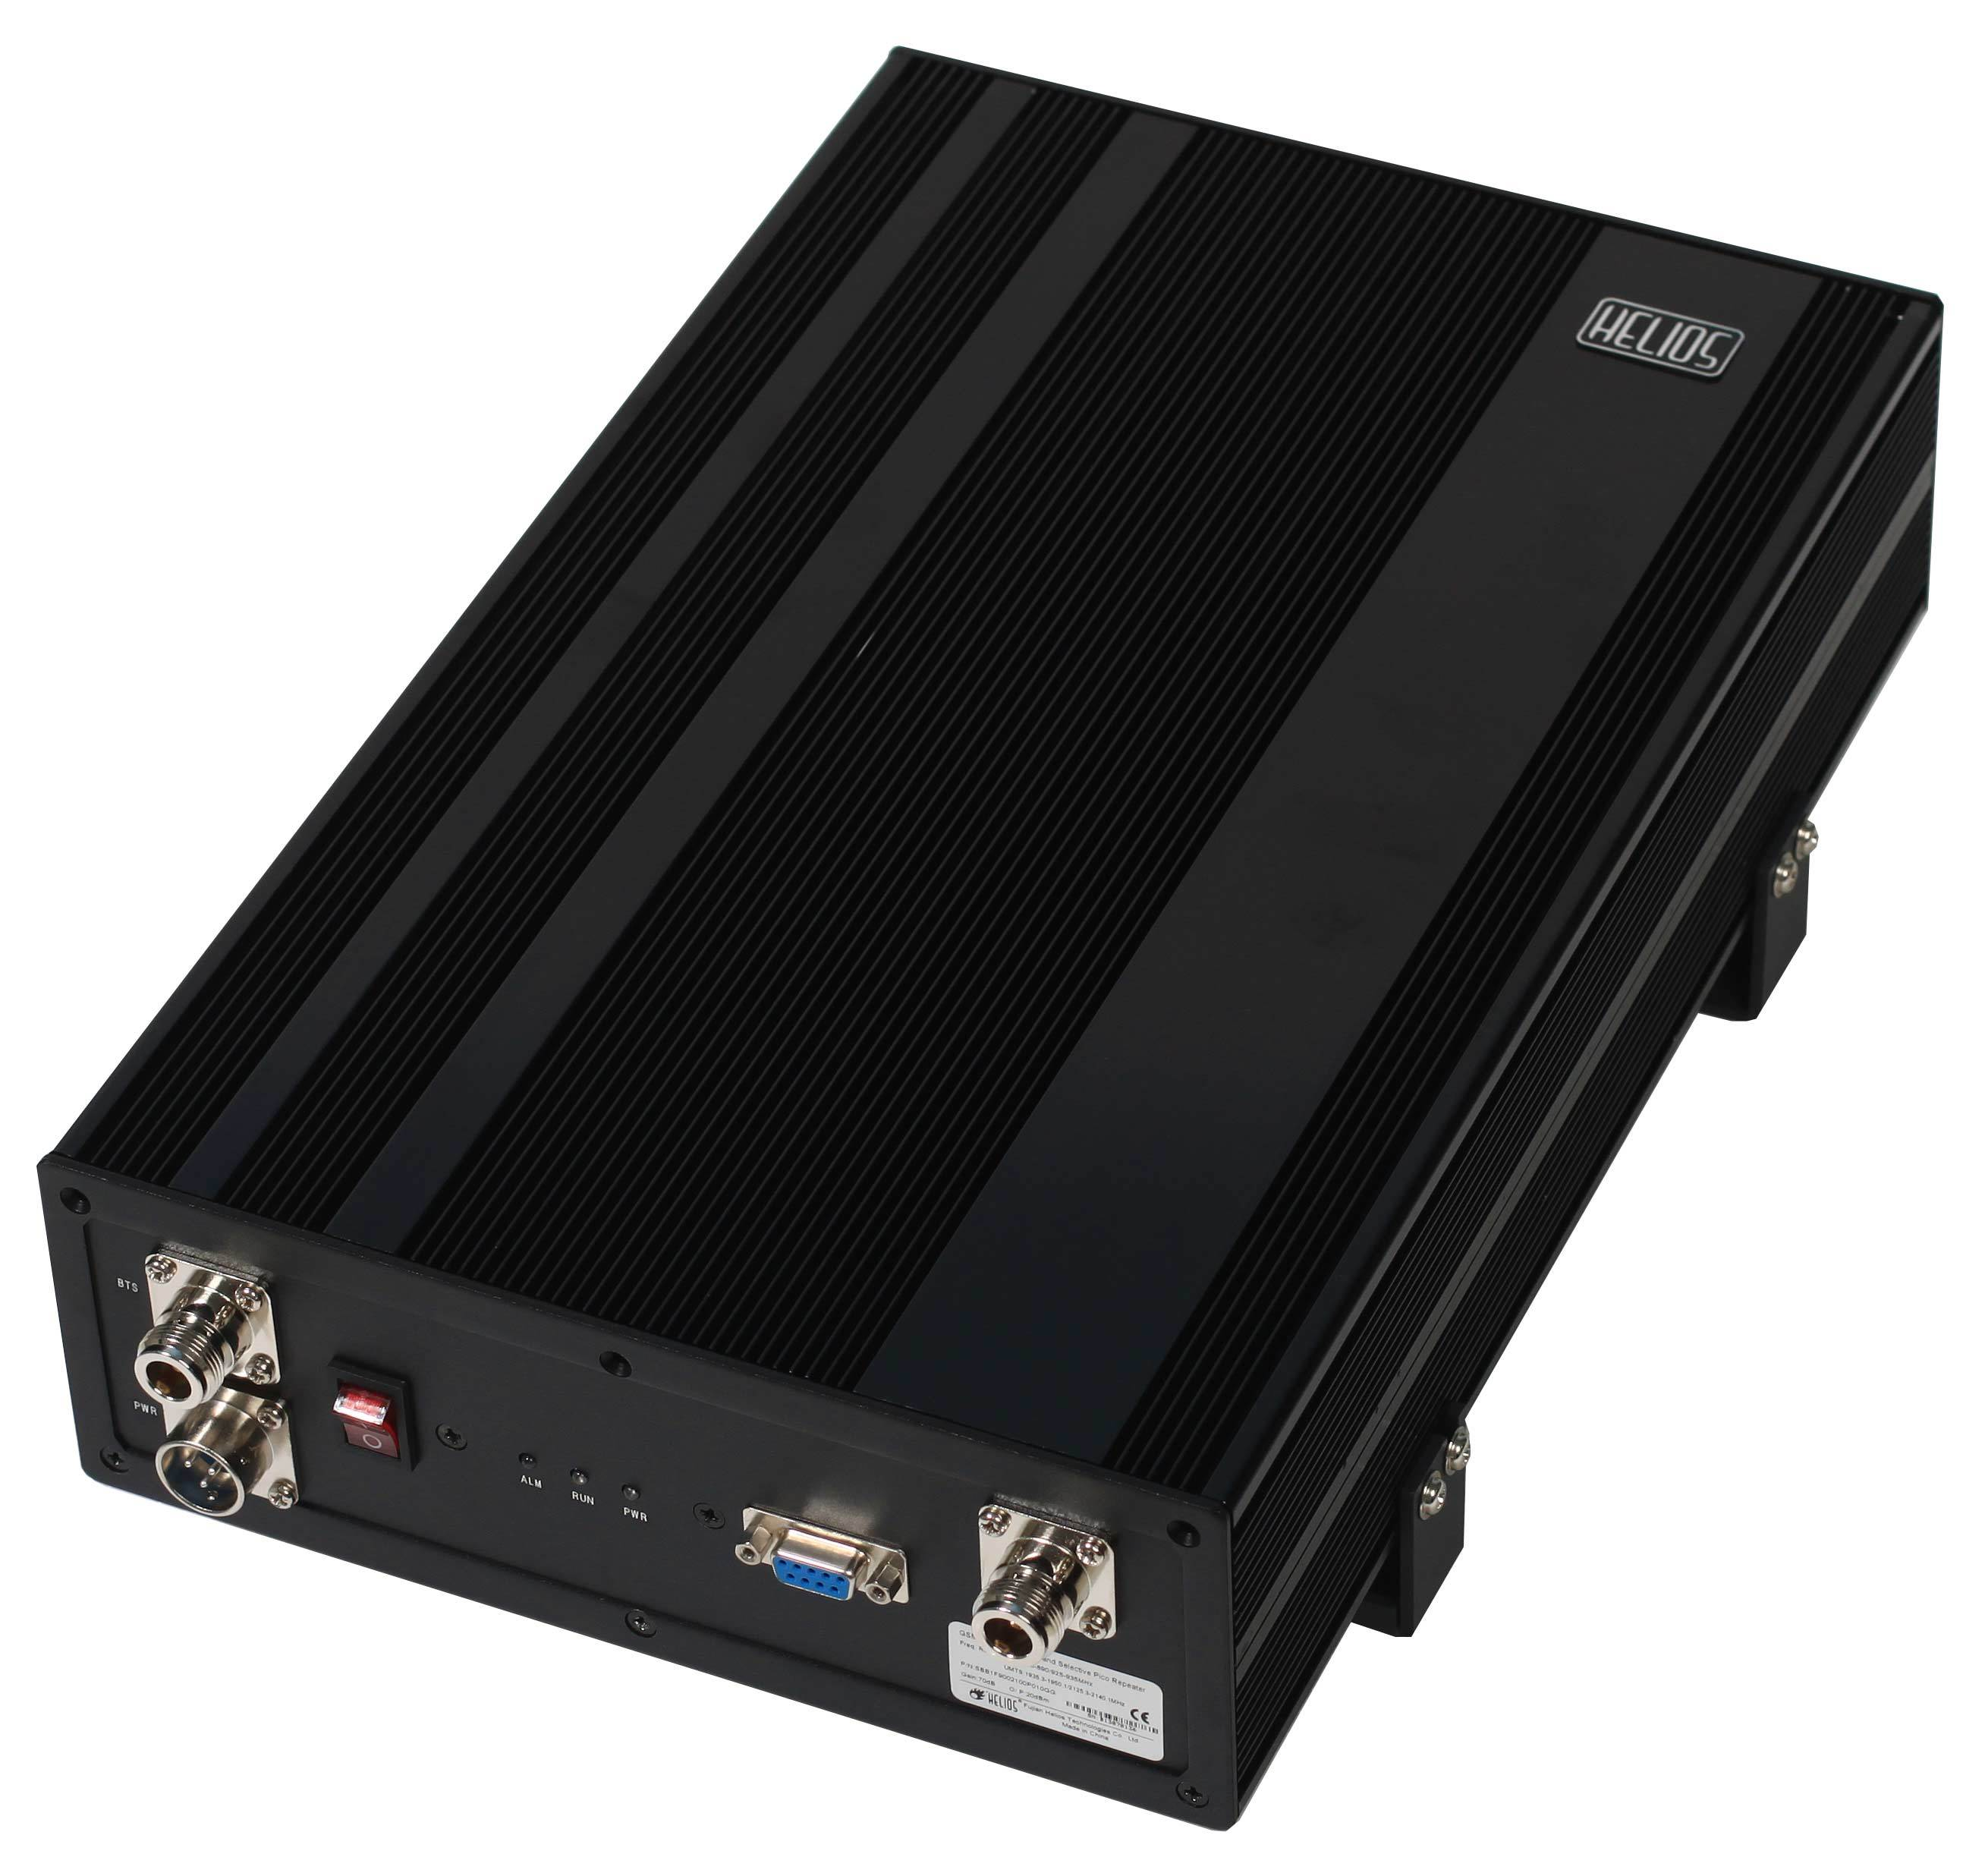 GSM/DCS/UMTS Single Band Indoor Band Selective Pico Repeater